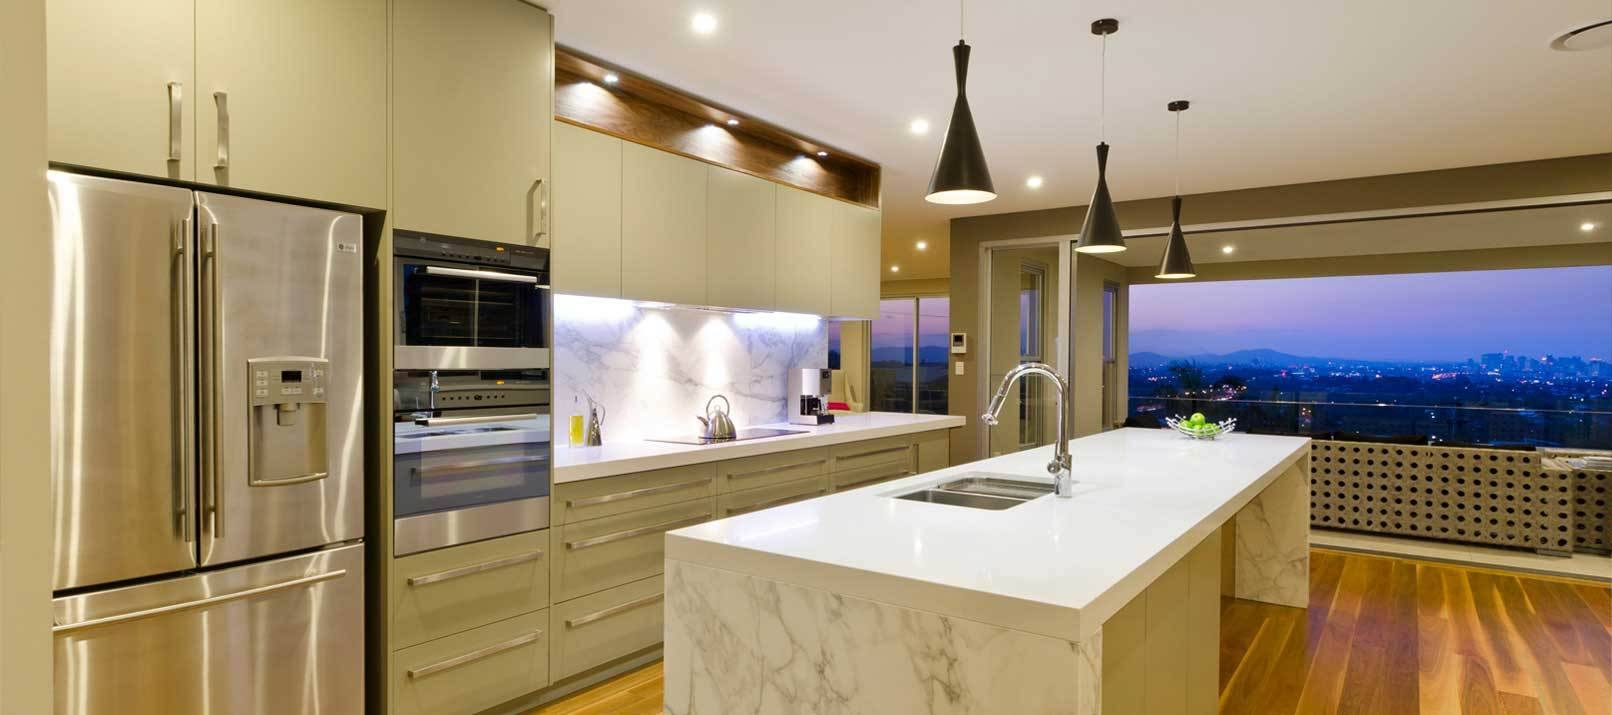 How to effectively plan your new kitchen designer kitchens for New style kitchen design